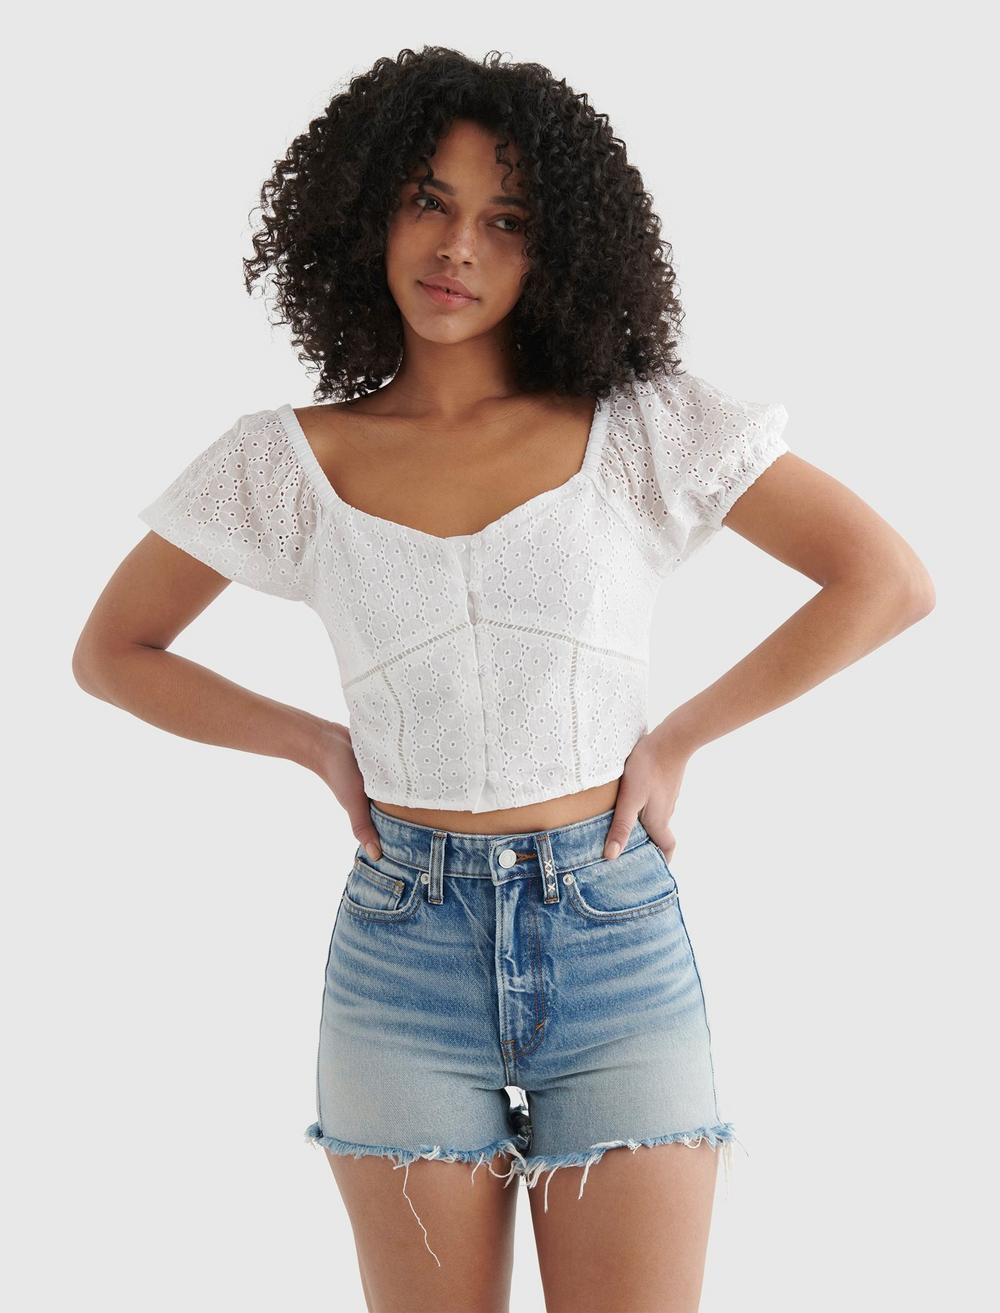 LACE SWEETHEART CROP TOP, image 2